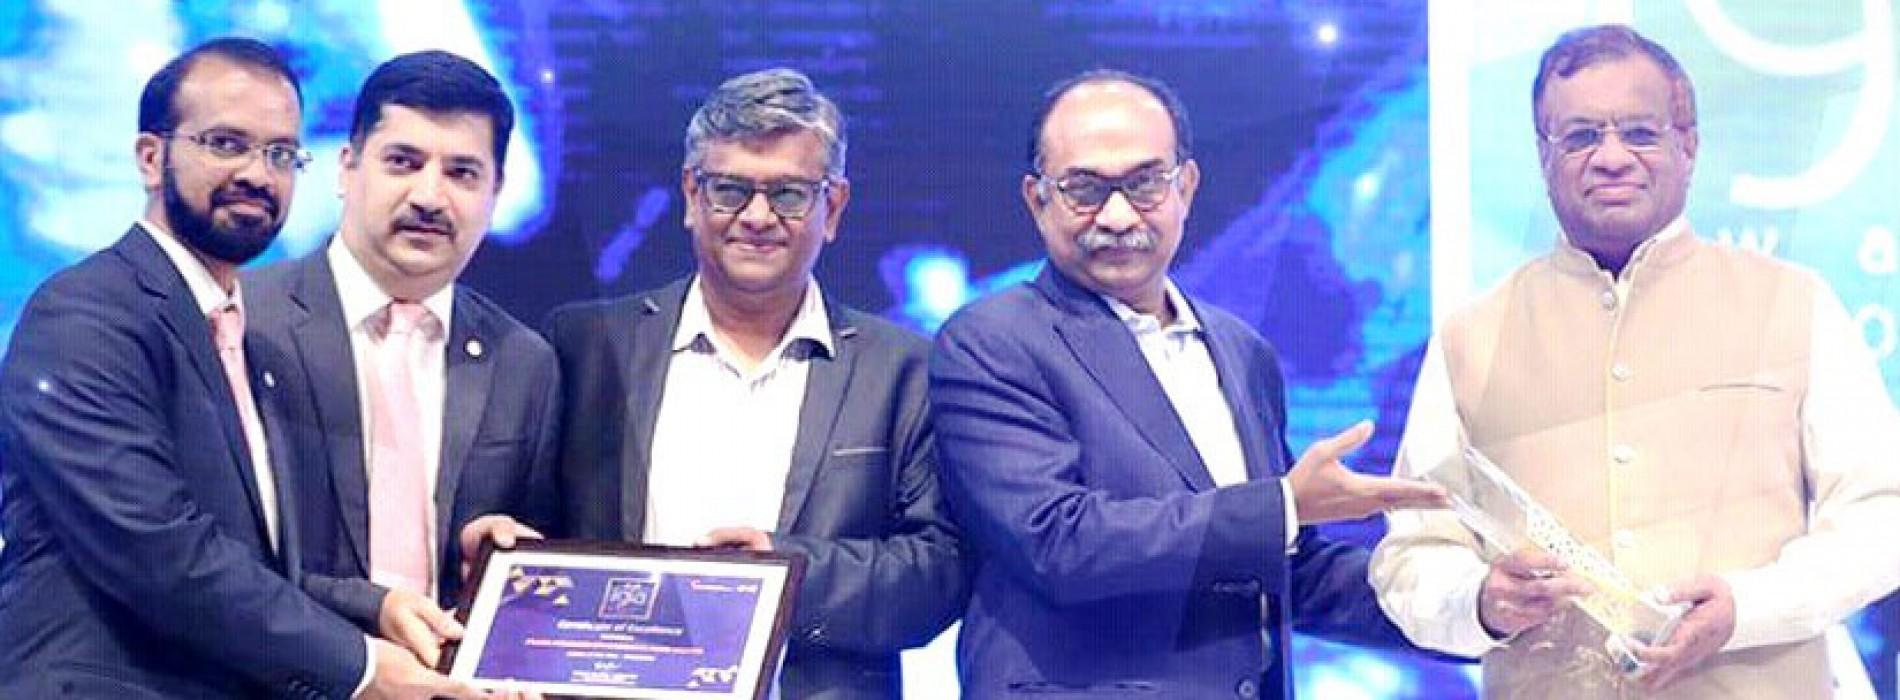 Plaza Premium Lounge honoured for its outstanding service and hospitality at Delhi Airport